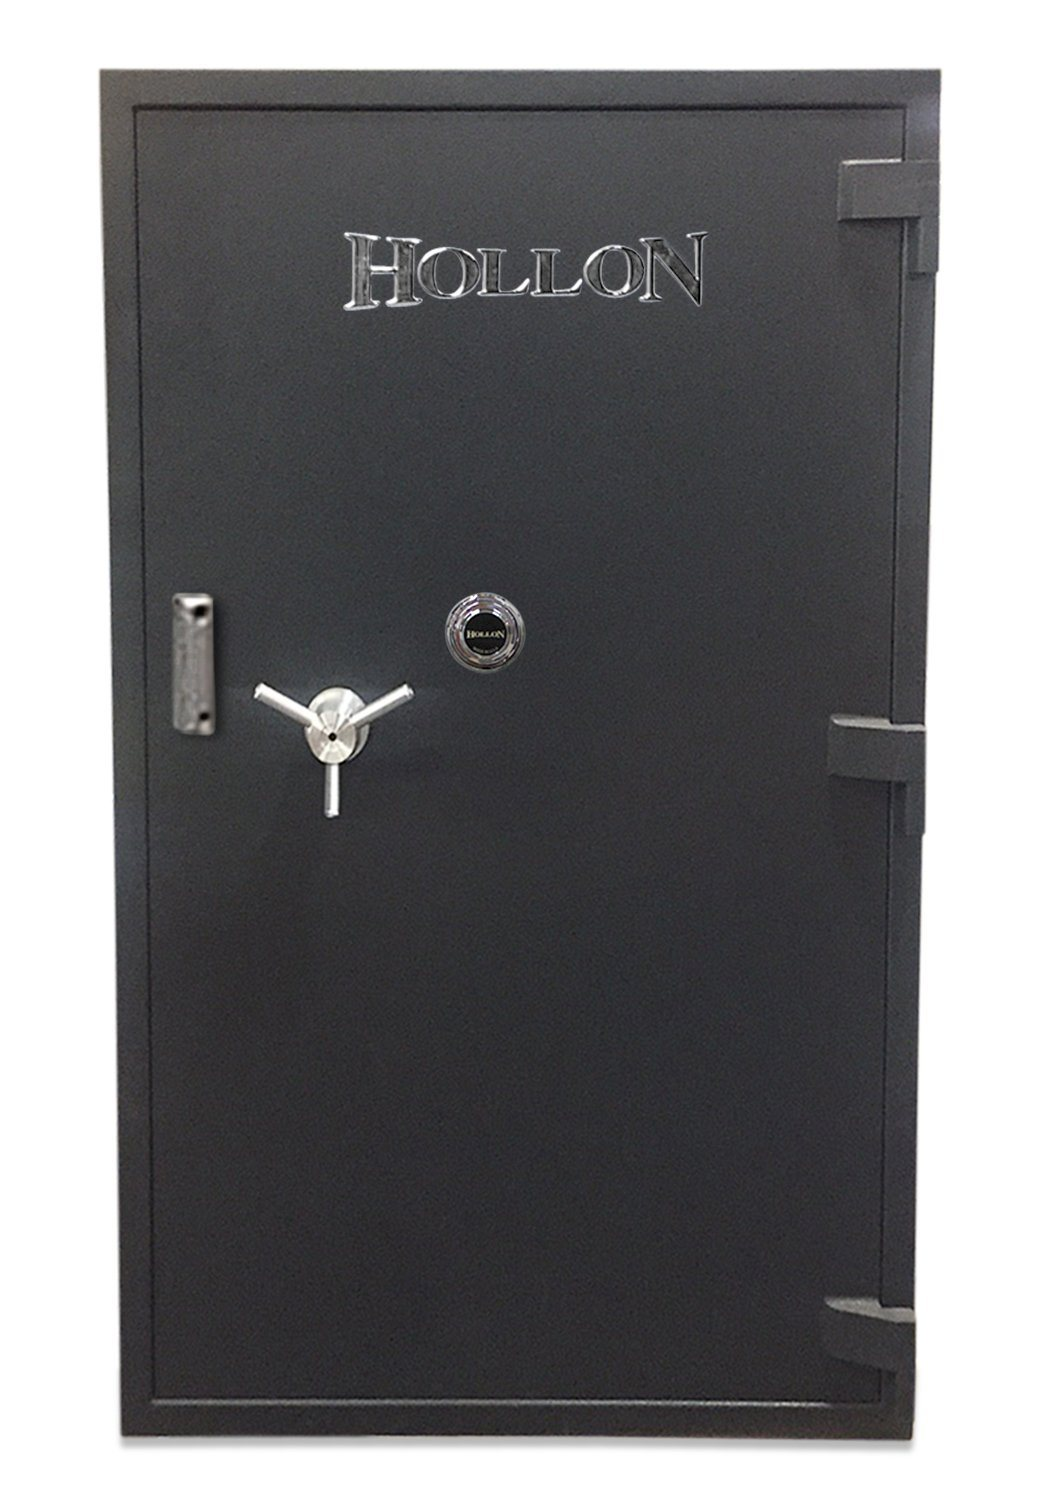 High Security Burglar Fire Safes - Hollon PM-5837C TL-15 Burglary 2 Hour Fire Safe